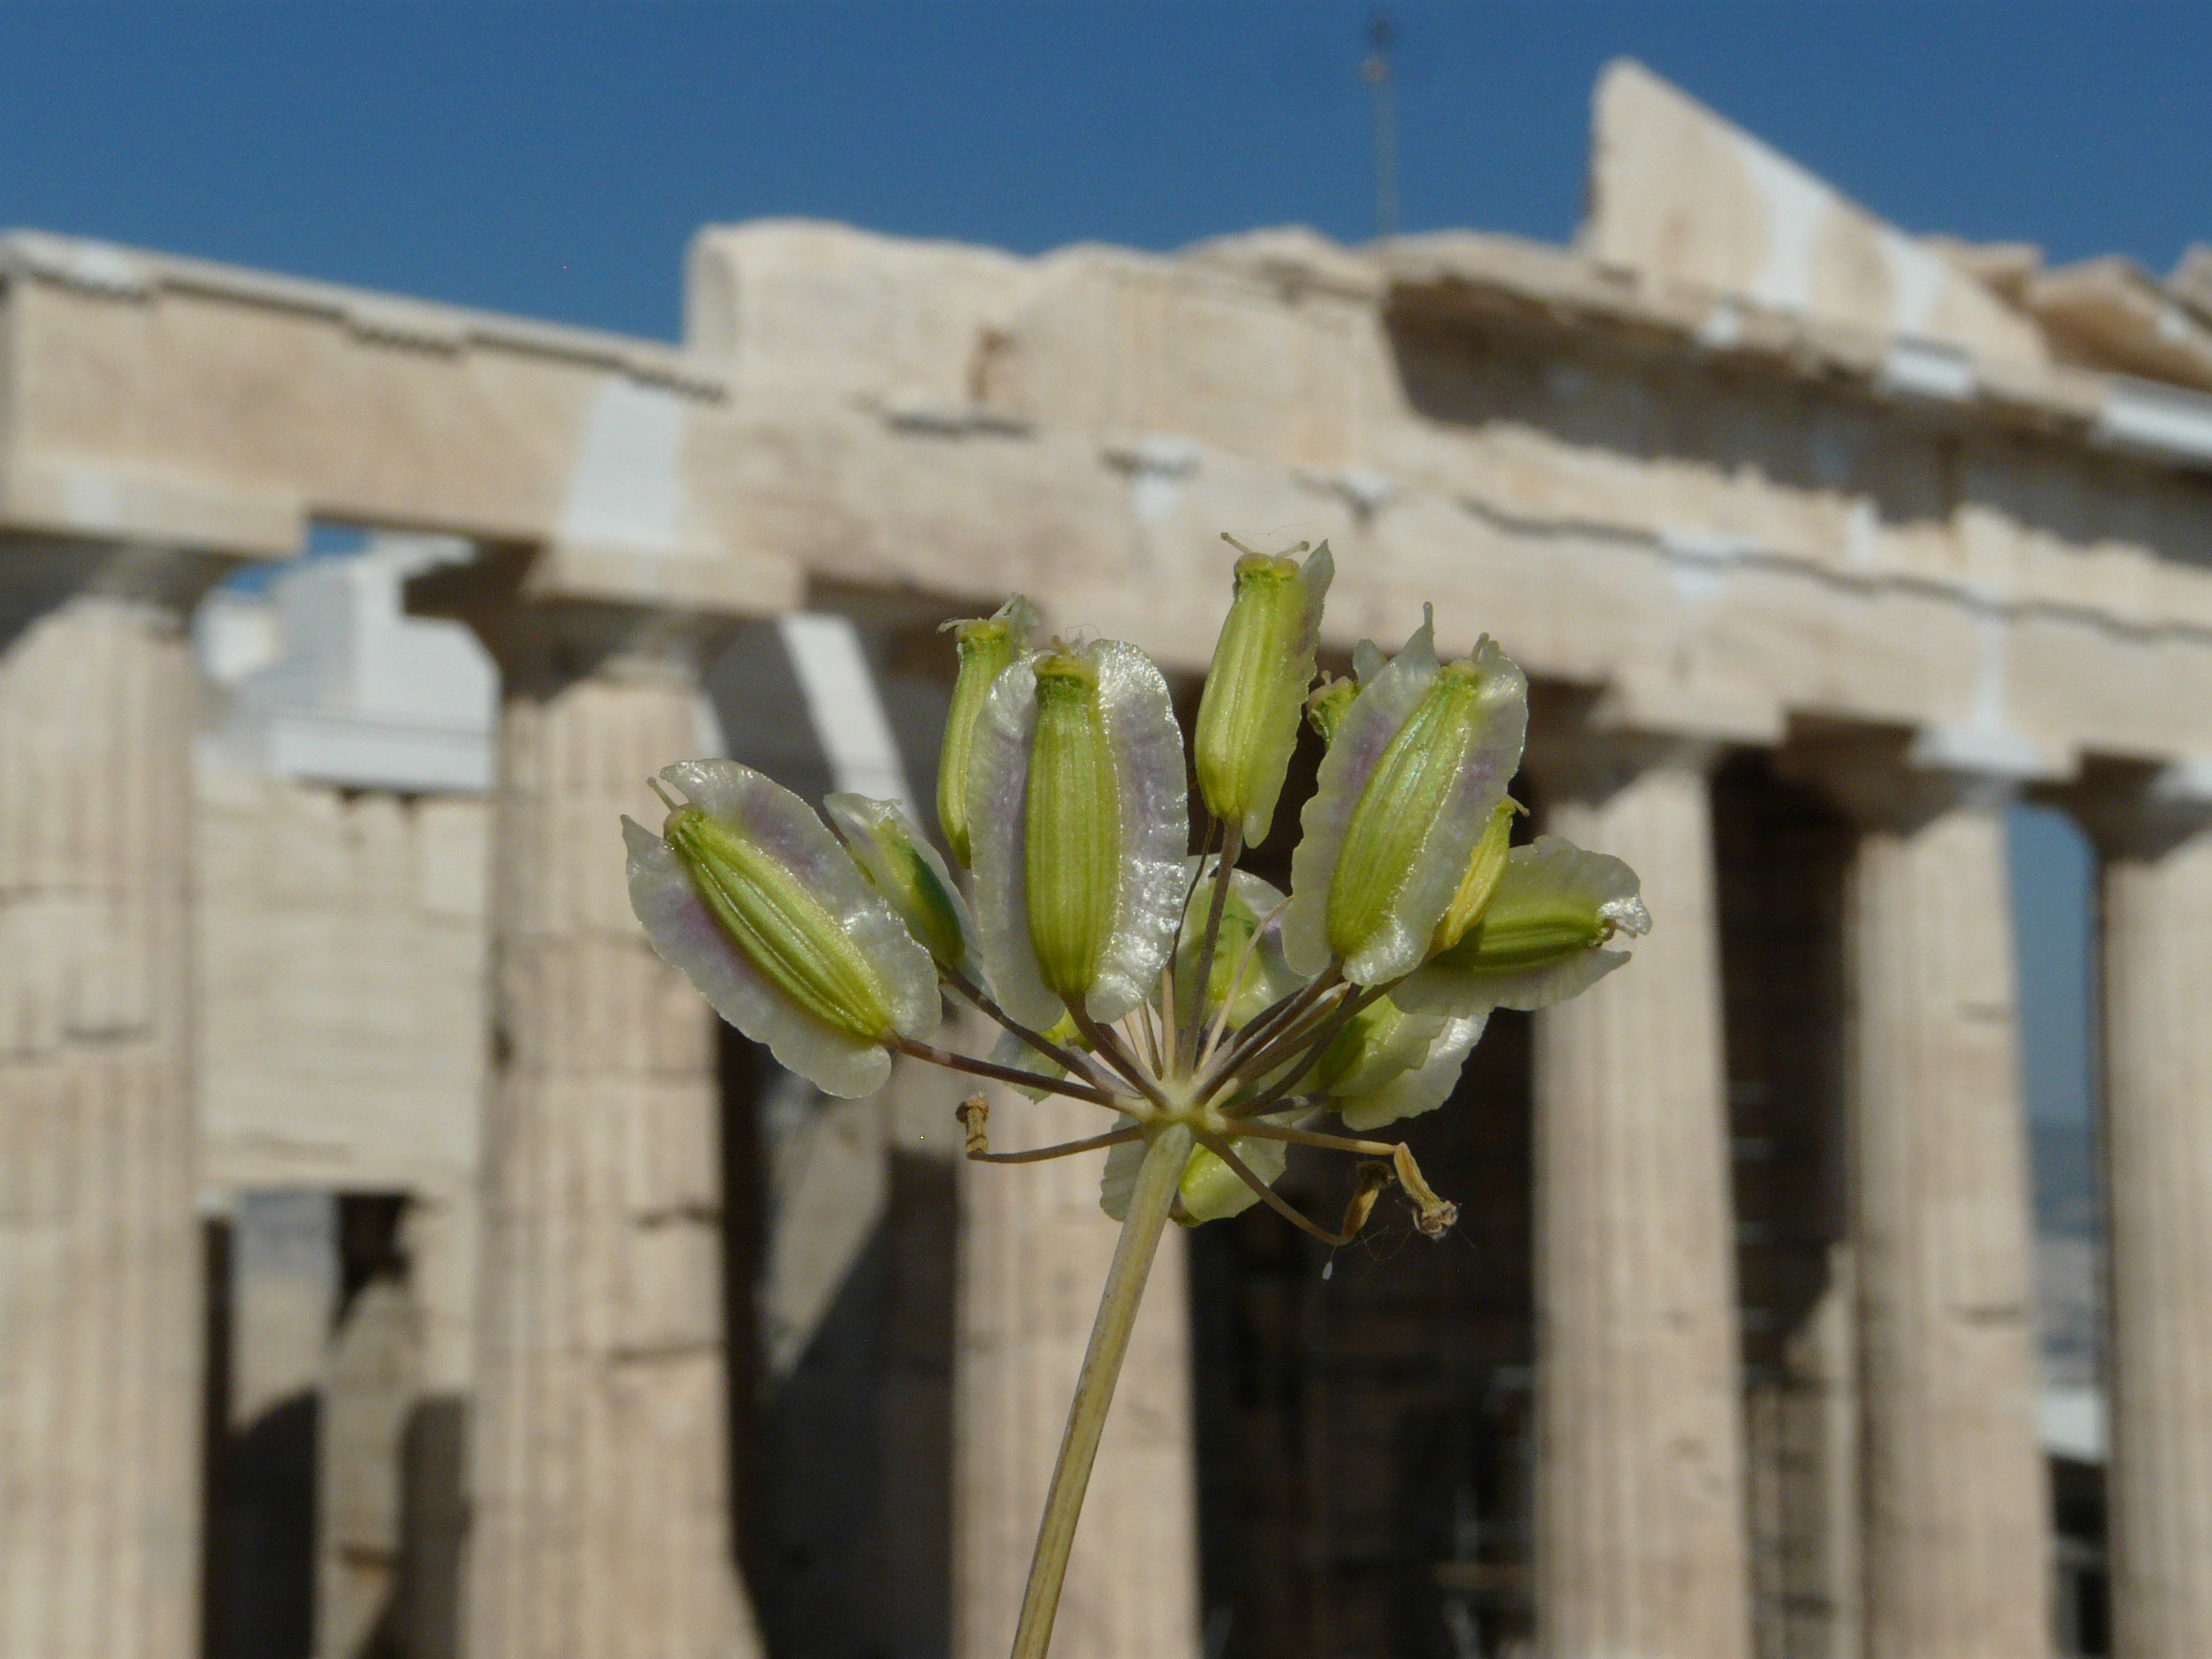 © Dipartimento di Scienze della Vita, Università degli Studi di Trieste<br>by Andrea Moro<br>Athens, Acropolis, Propylaea, Attica, Greece, 05/05/2012<br>Distributed under CC-BY-SA 4.0 license.